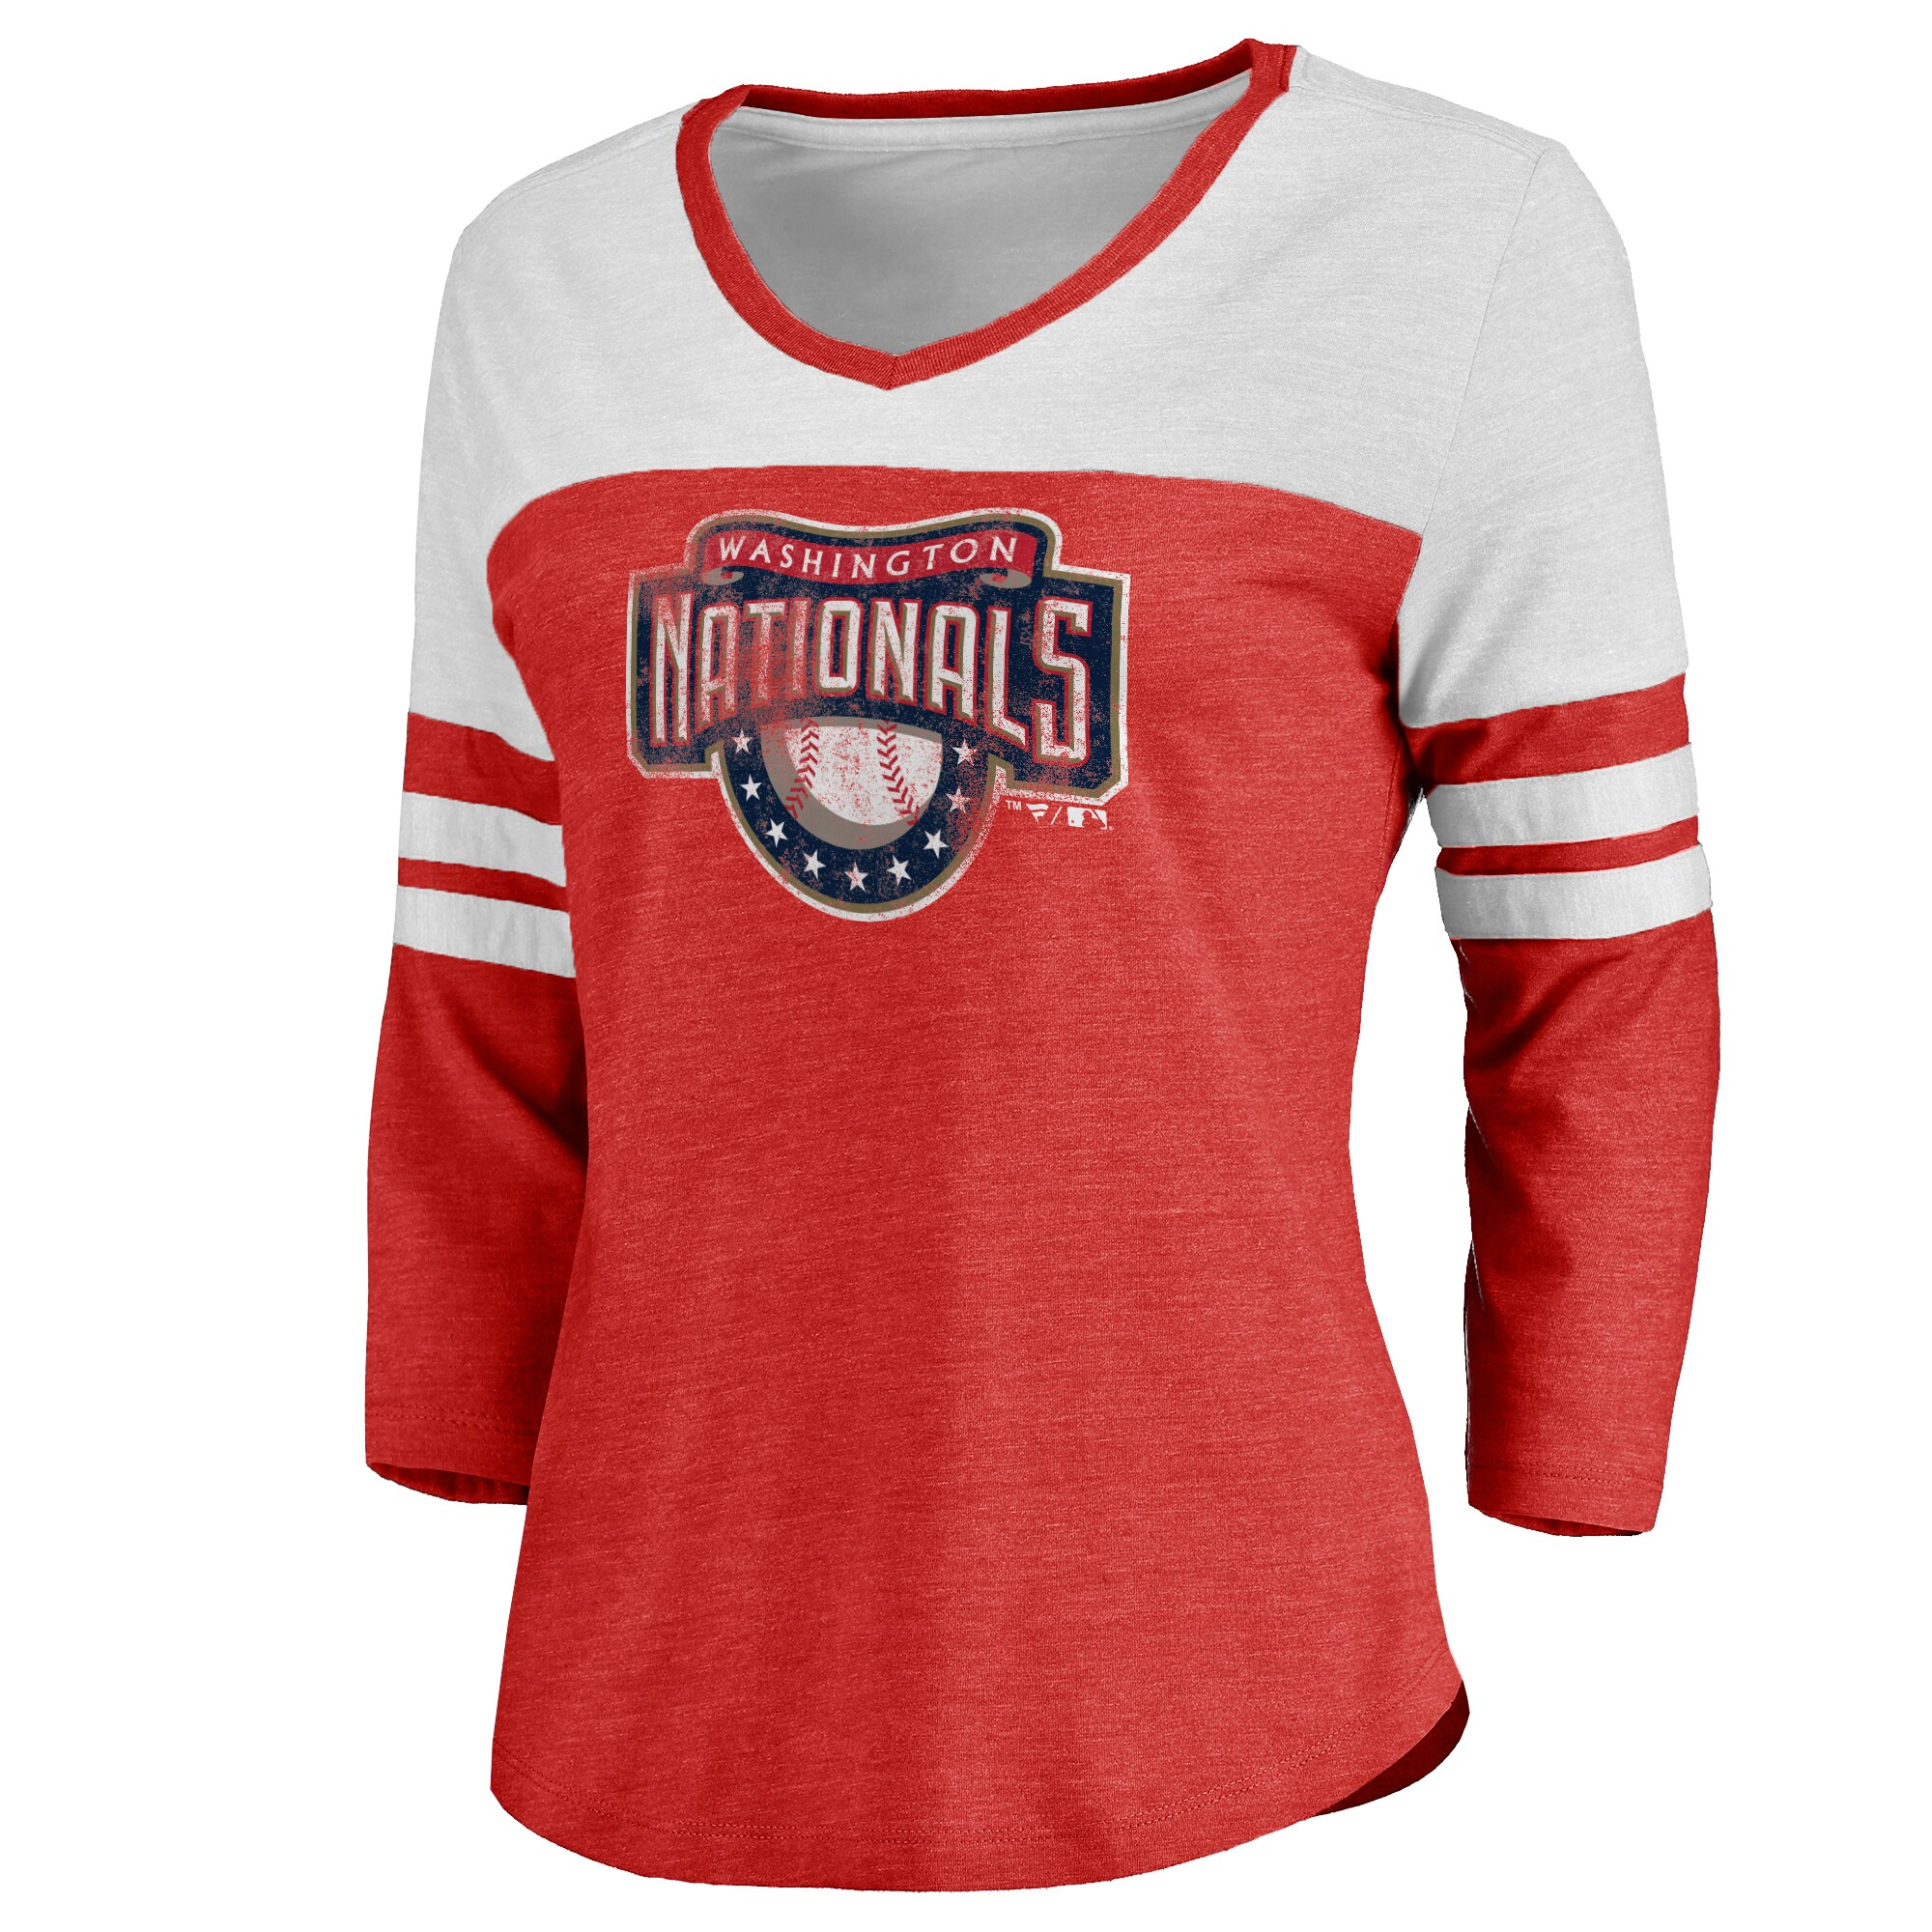 Washington Nationals Women's Cooperstown Two-Tone Three-Quarter Sleeve Tri-Blend T-Shirt - Red/White